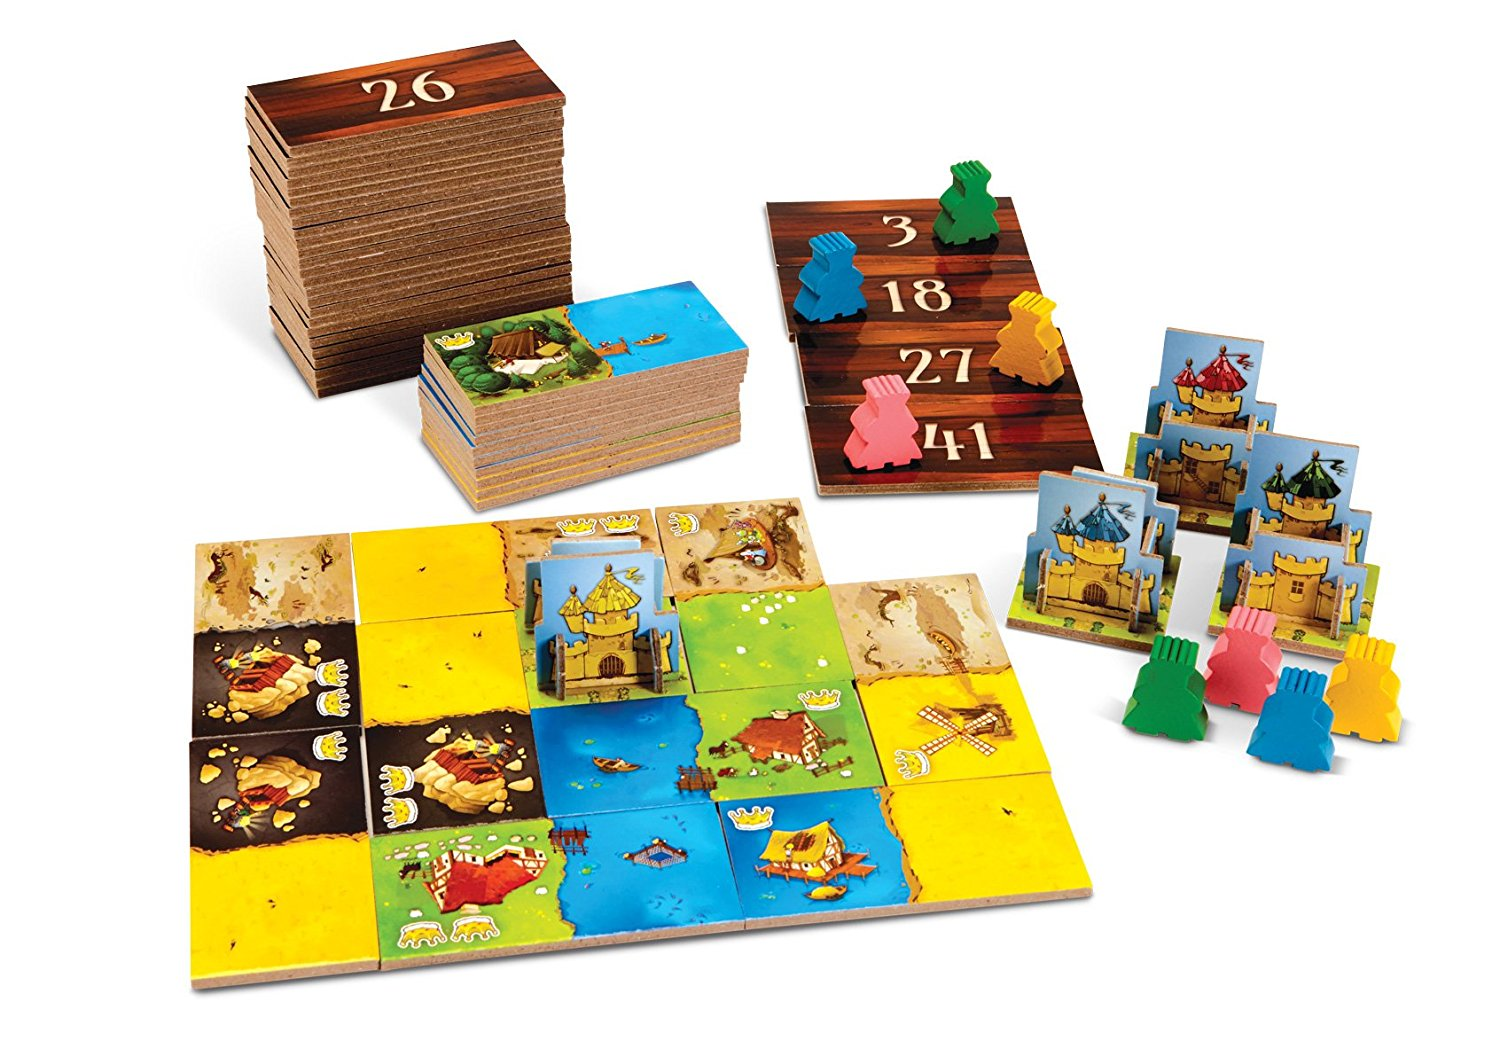 Kingdomino tiles laid out to show the 2 colored tiles and wooden characters and little castles